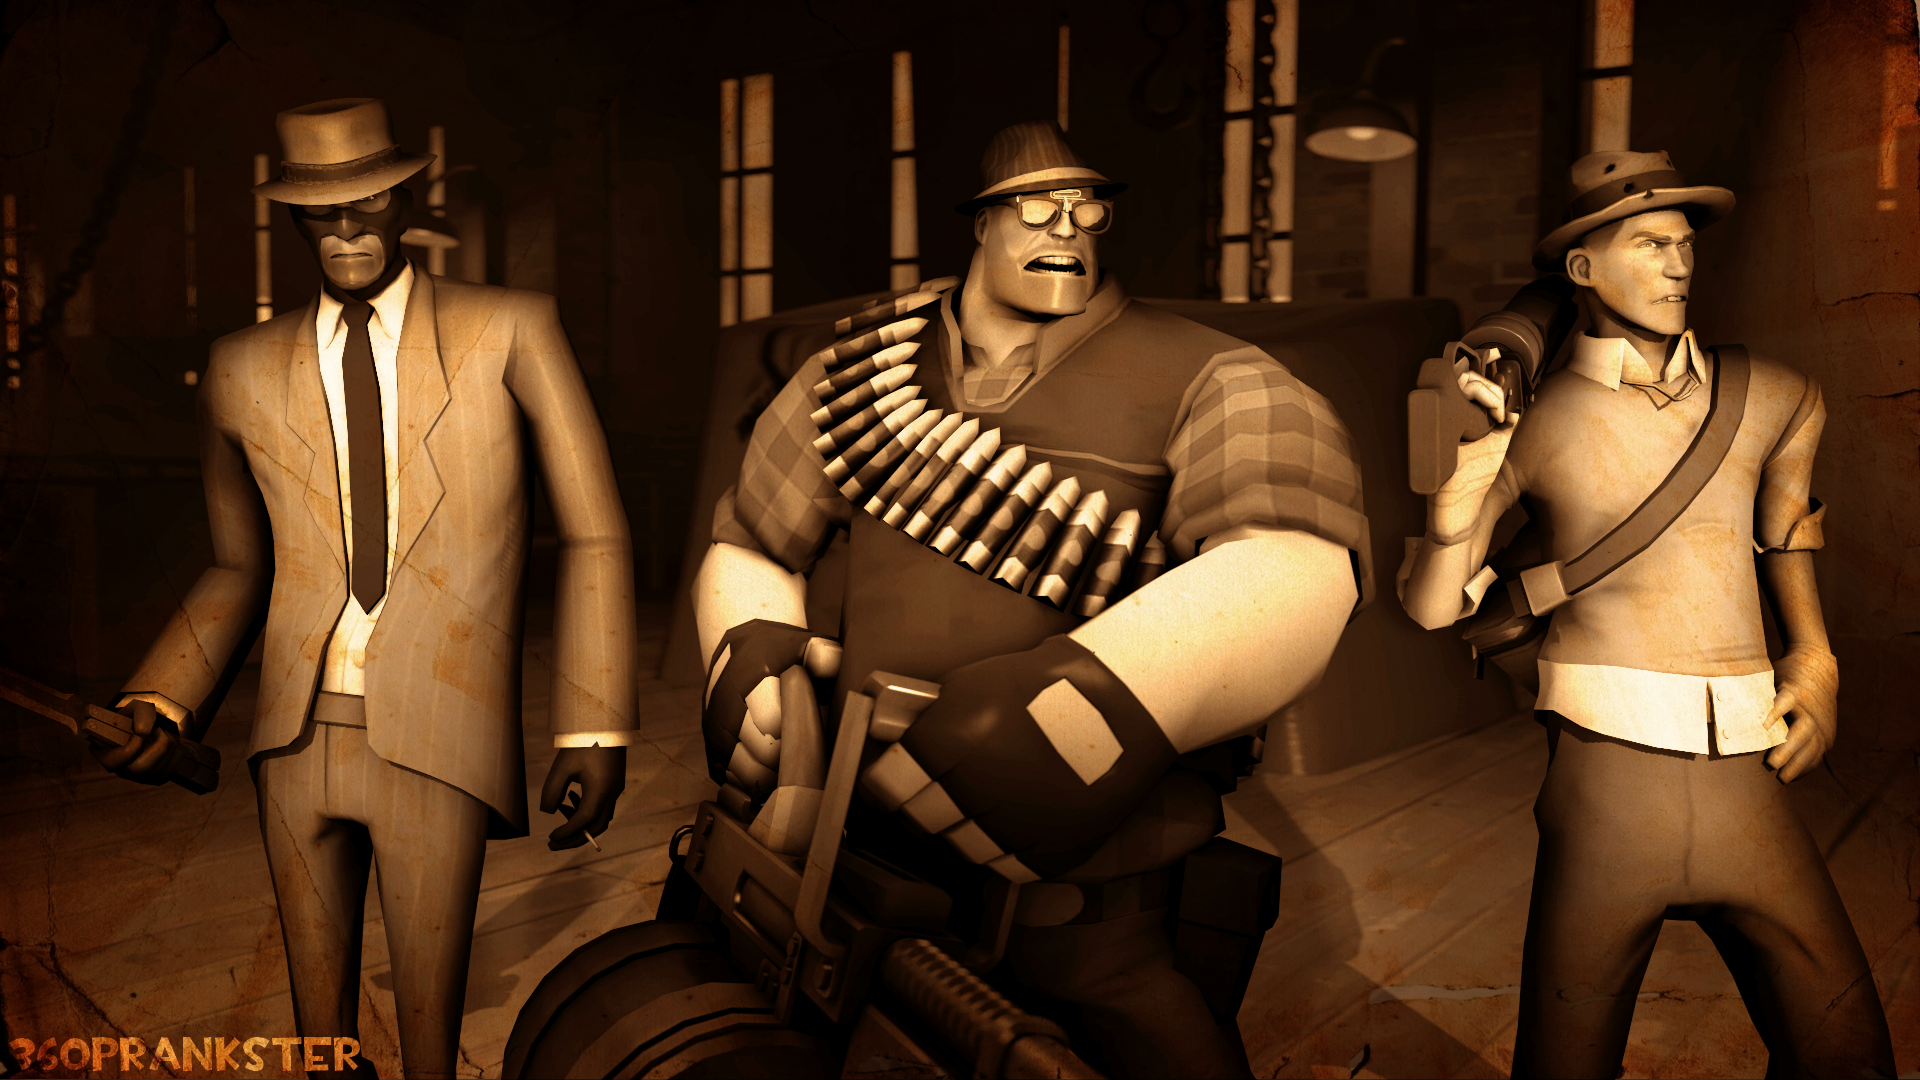 Sfm Team Mafia 2 Old By 360prankster On Deviantart